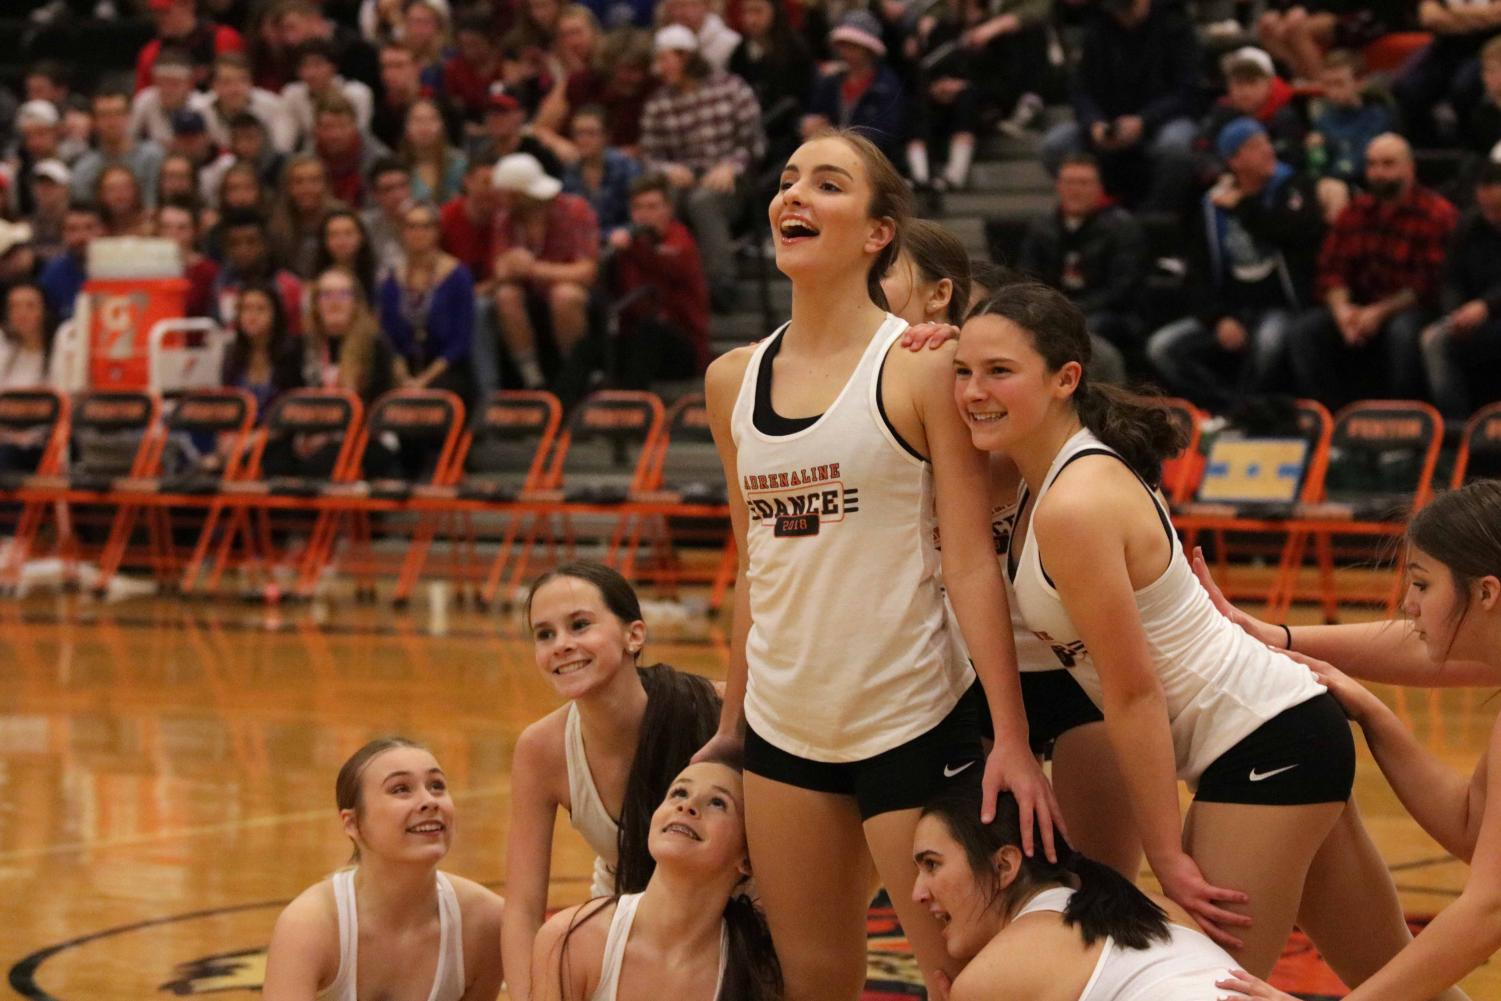 Ending their first performance during halftime at the Fenton varsity  basketball game against Linden freshman Taylor Farrell poses. The Dance team had been working hard and preparing for their fist of many performance.